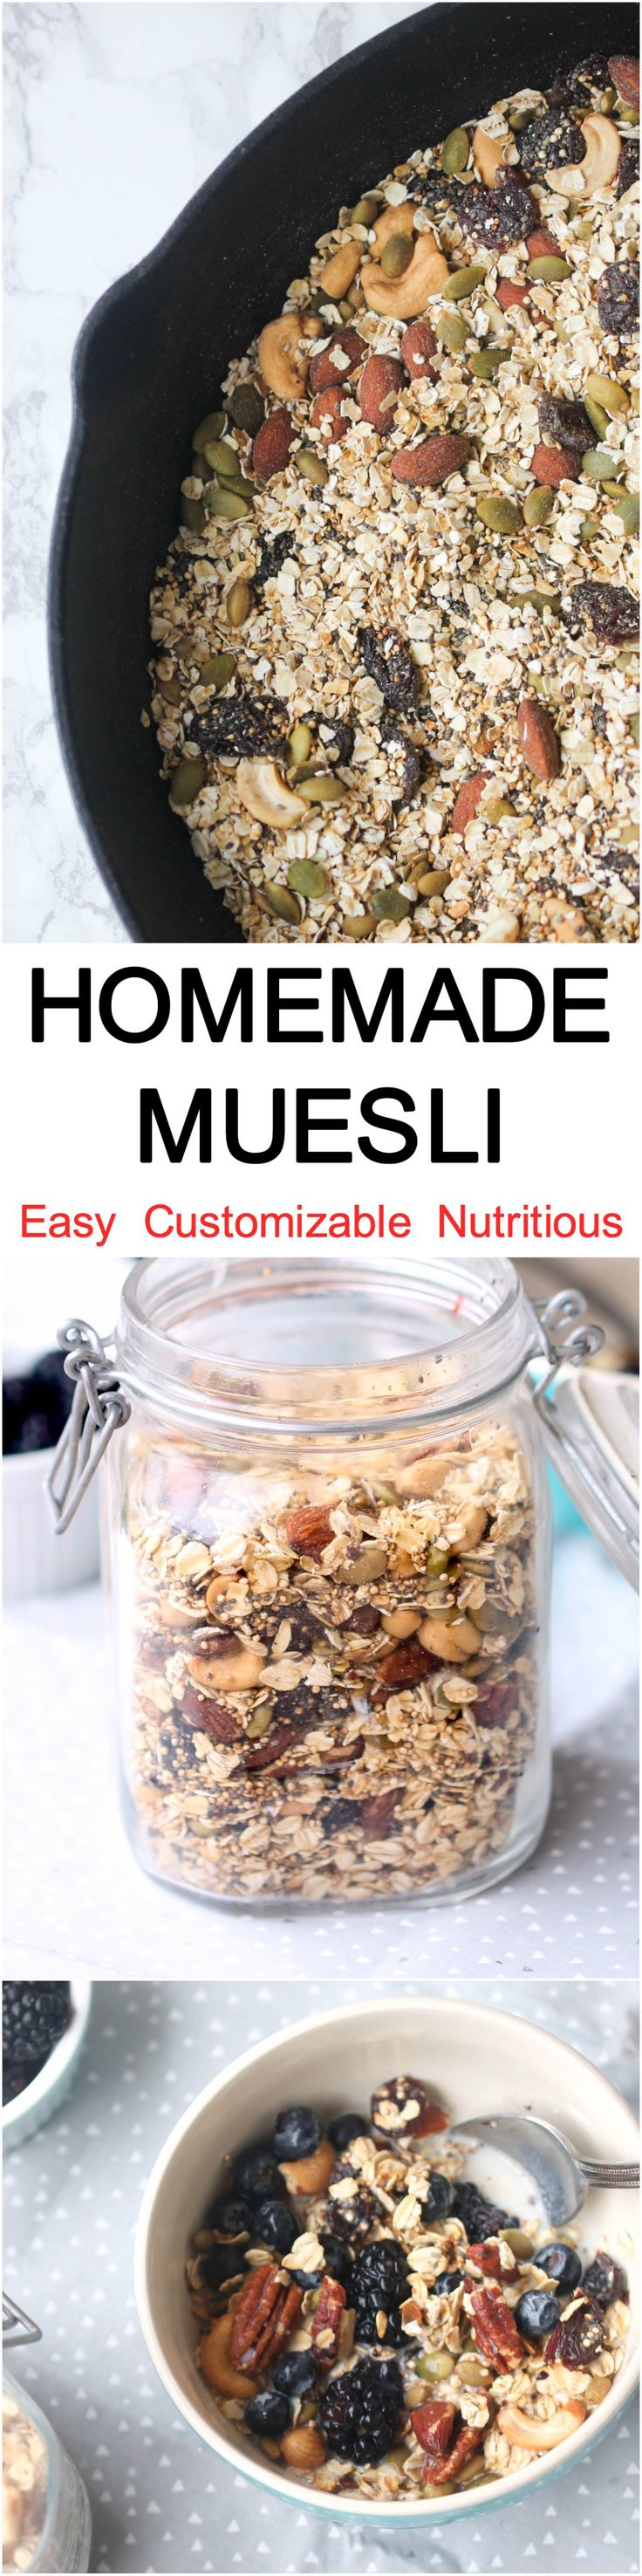 Homemade Muesli – quick, nutritious breakfast and snack option! Vegan and Gluten-Free.